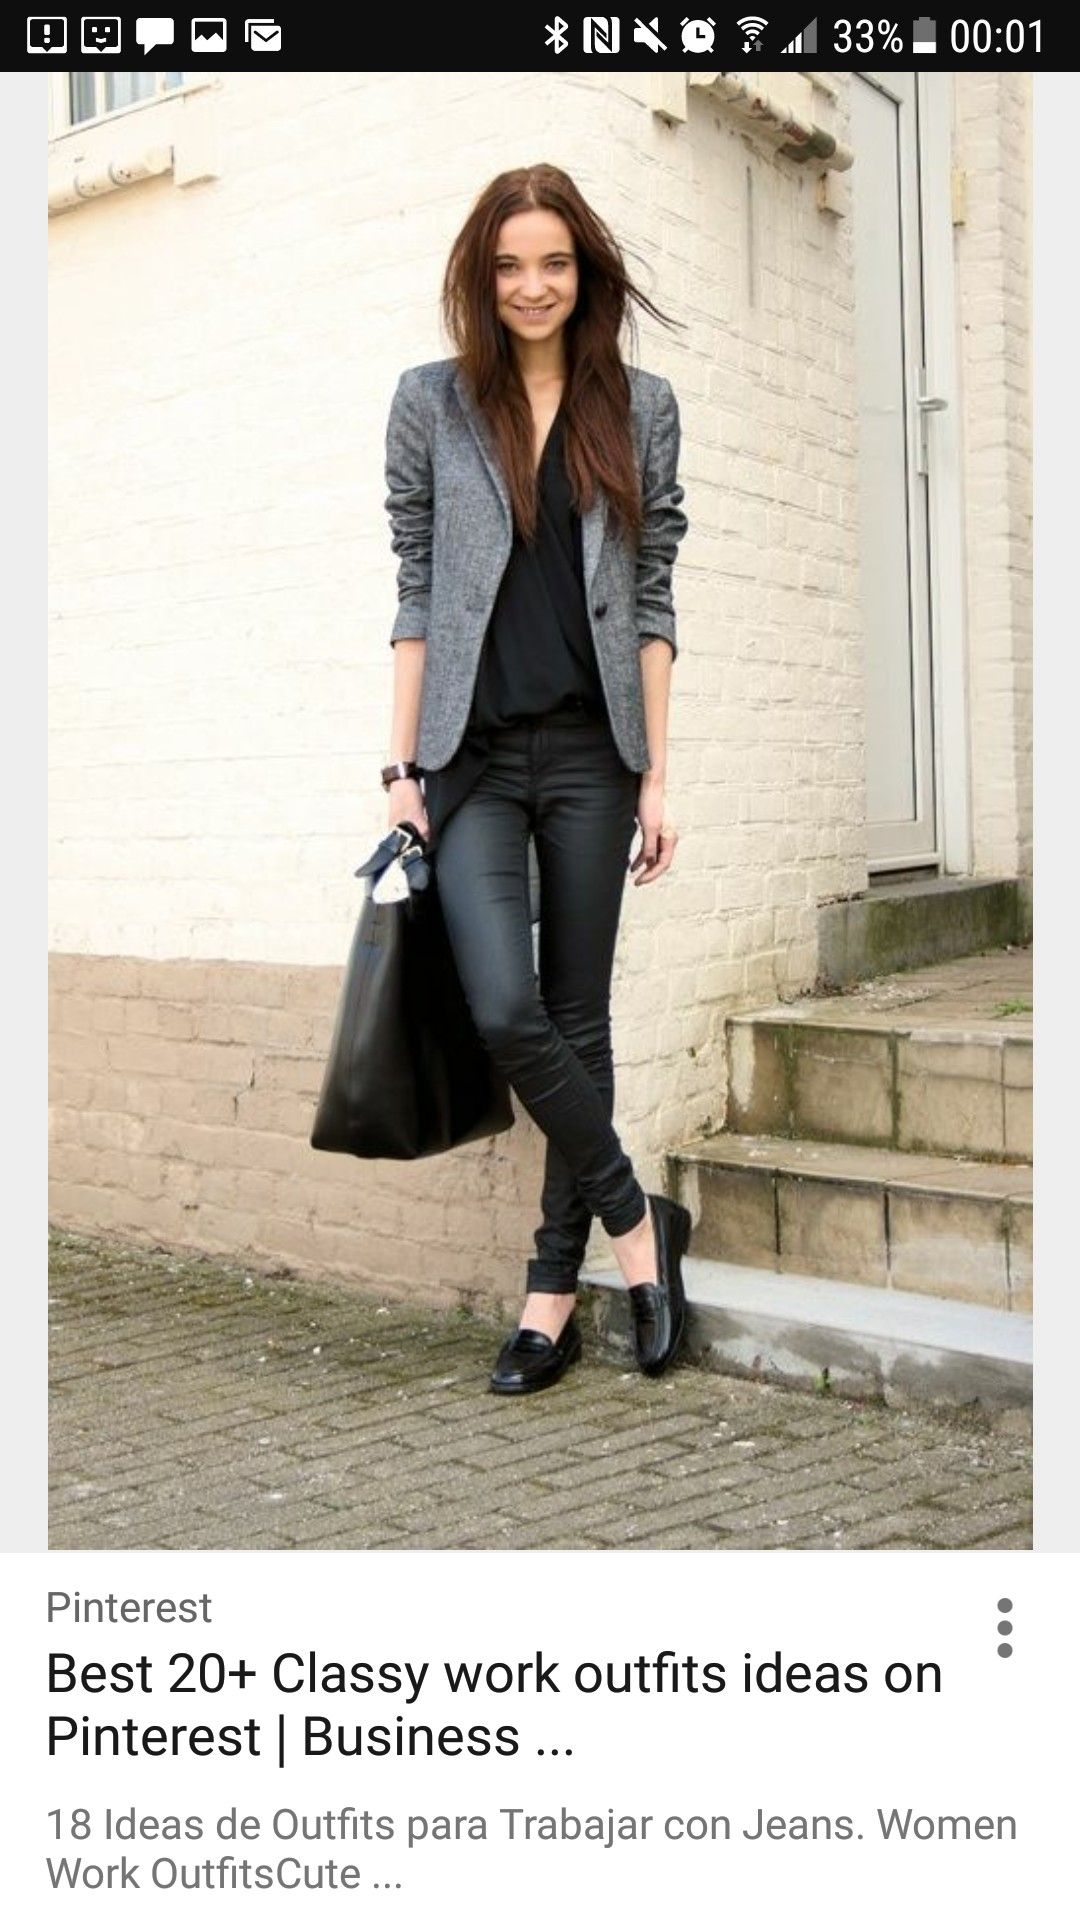 Pin by codius unique bootique on work outfit ideas pinterest